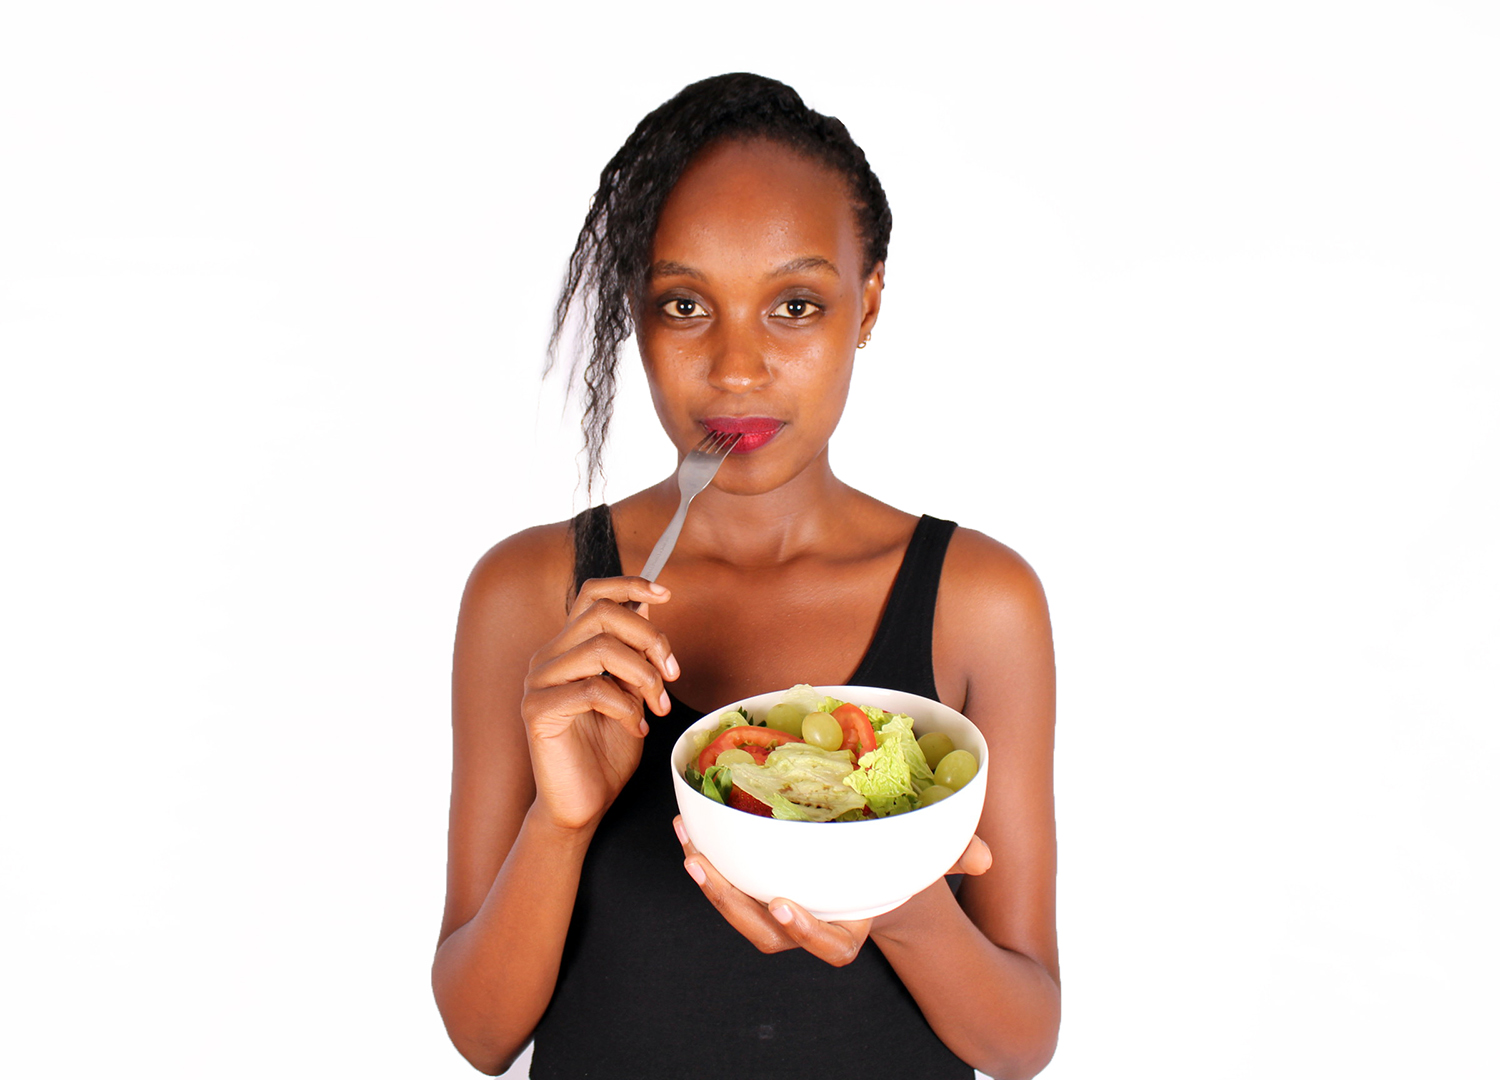 Beautiful woman holding a bowl of veggies and fruits